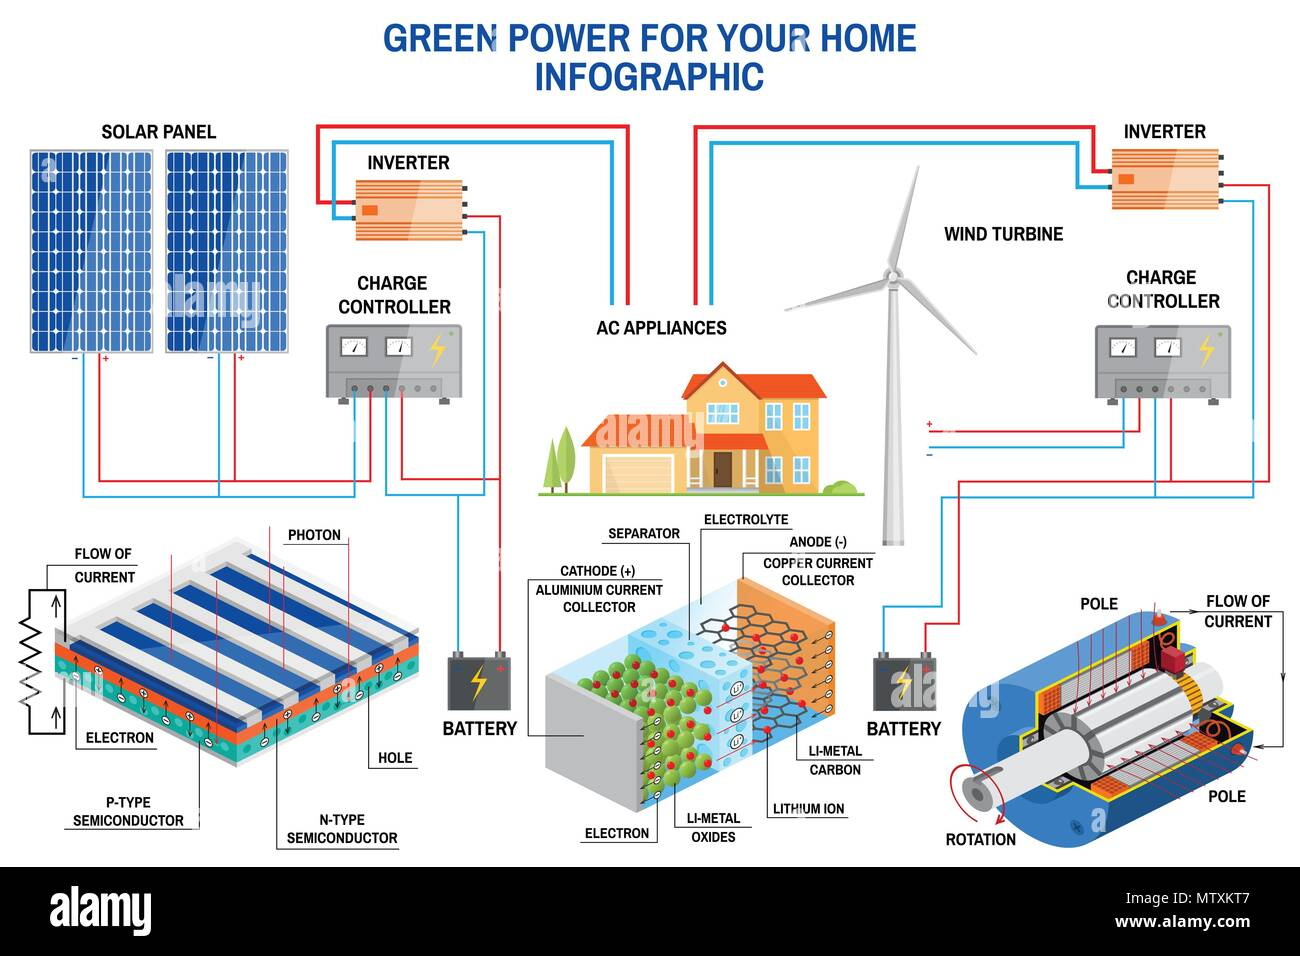 Incredible Solar Panel And Wind Power Generation System For Home Infographic Wiring Cloud Tziciuggs Outletorg